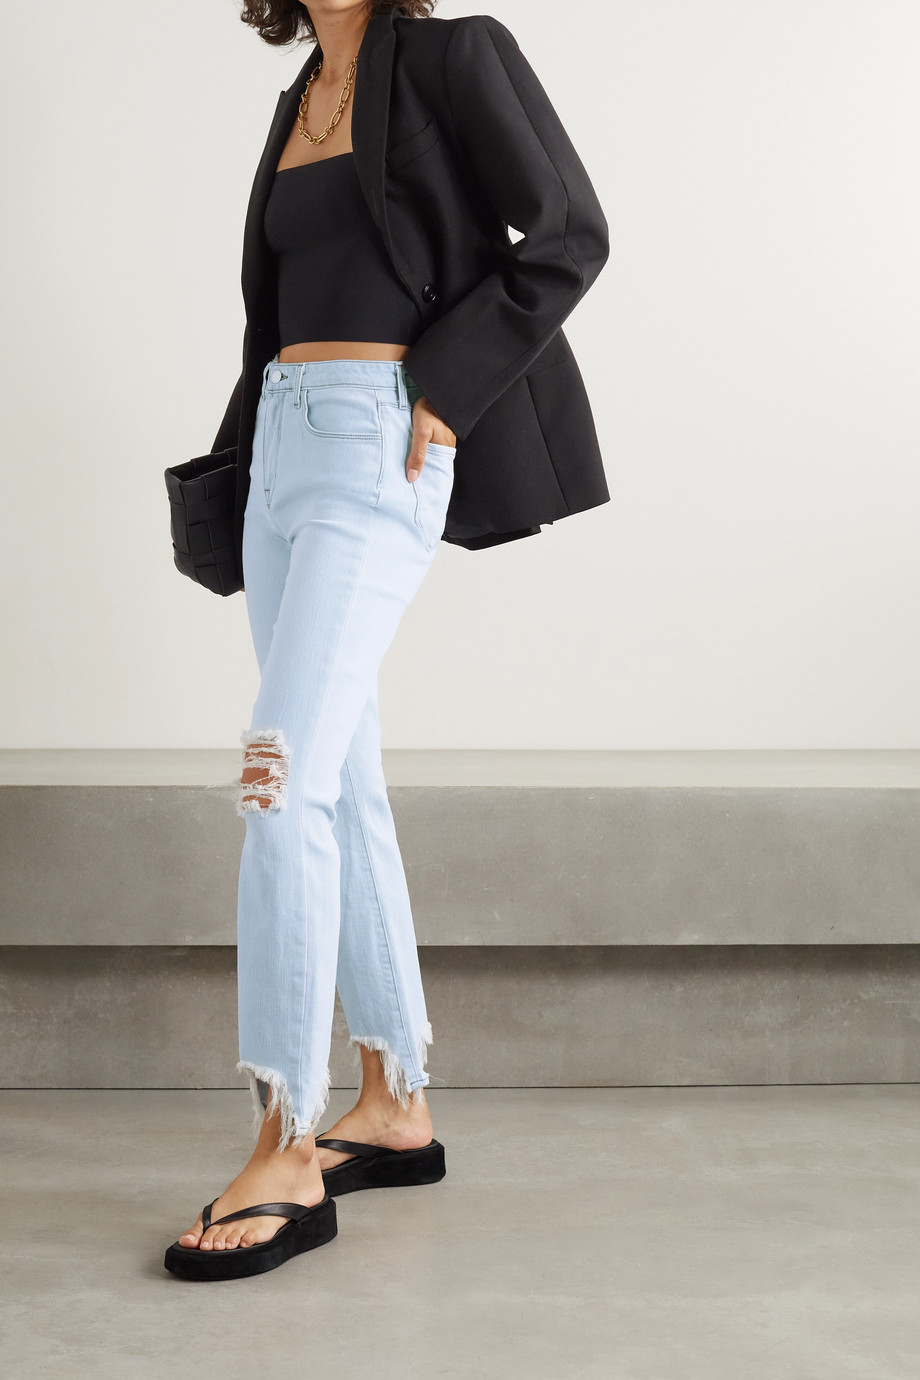 L'Agence High Line distressed high-rise skinny jeans